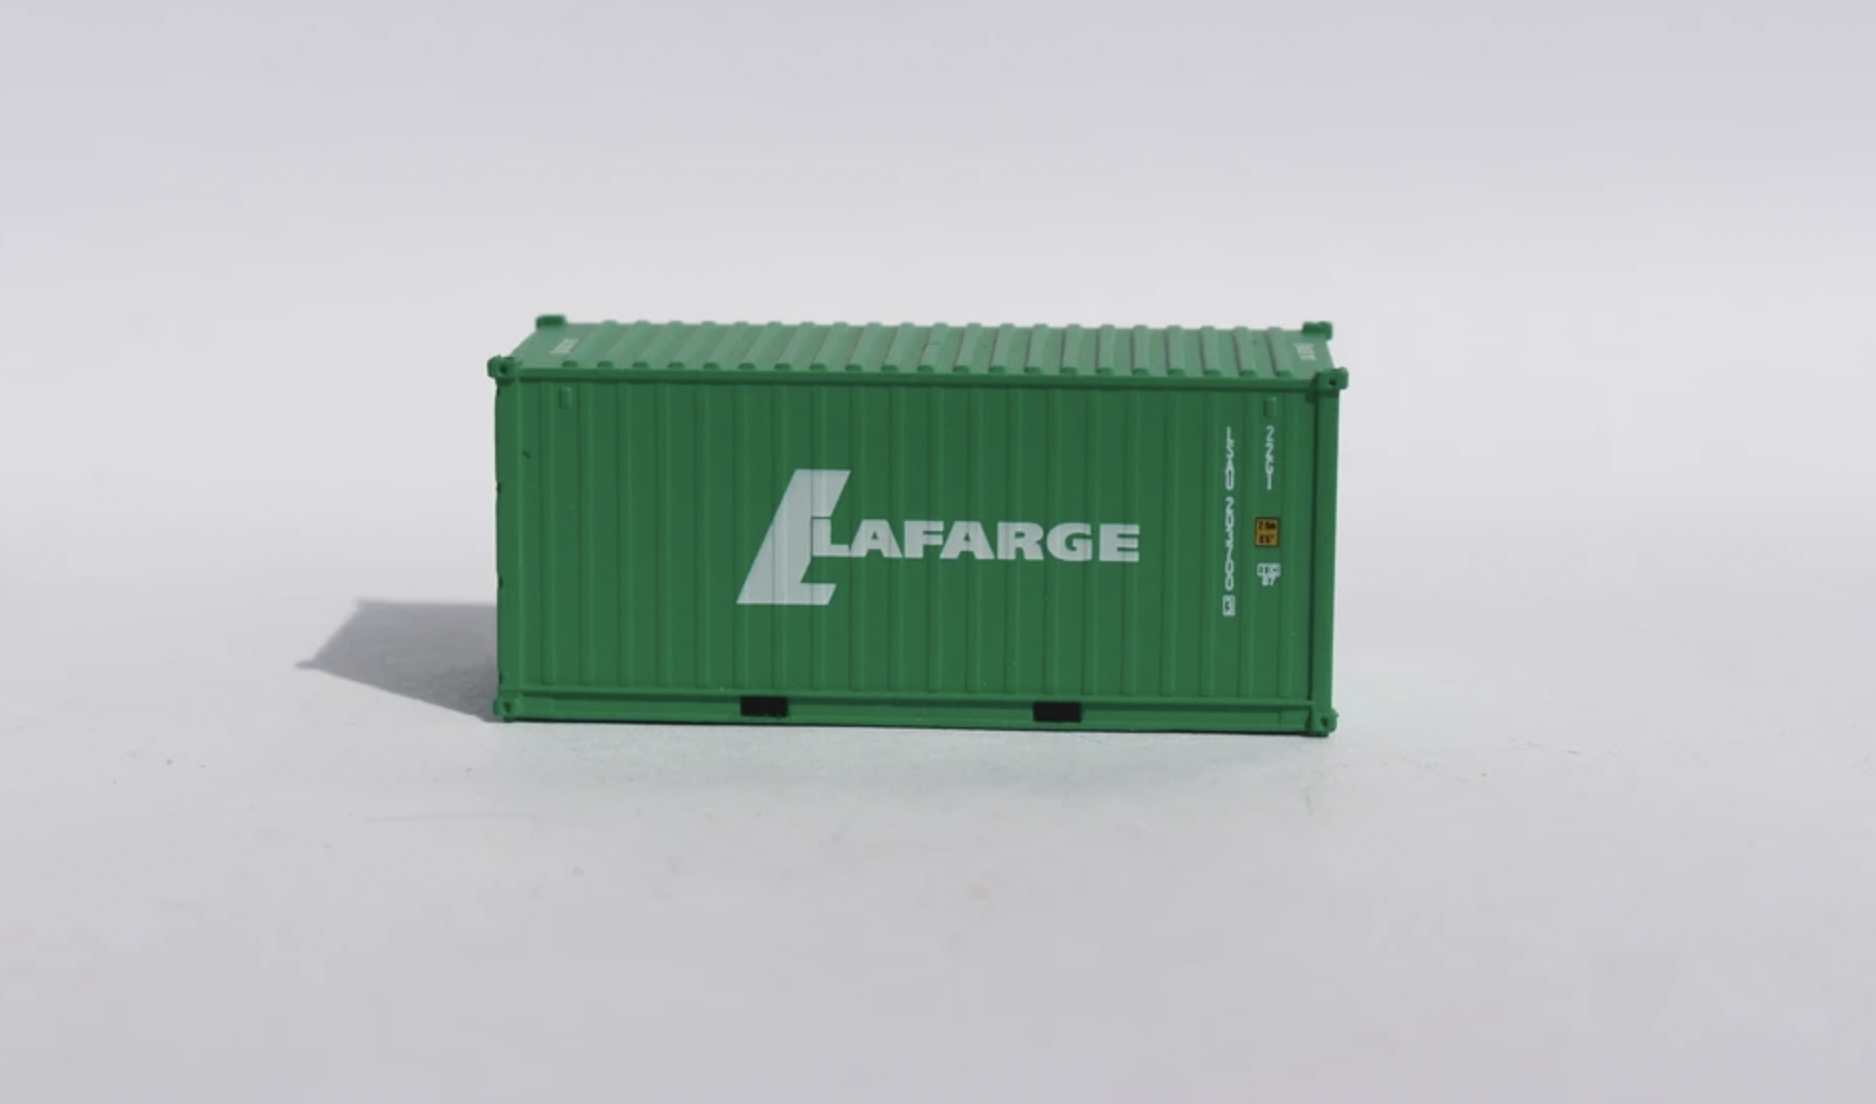 N Scale - Jacksonville Terminal - 205437 - Container, 20 Foot, Corrugated, Dry - Lafarge - 203700